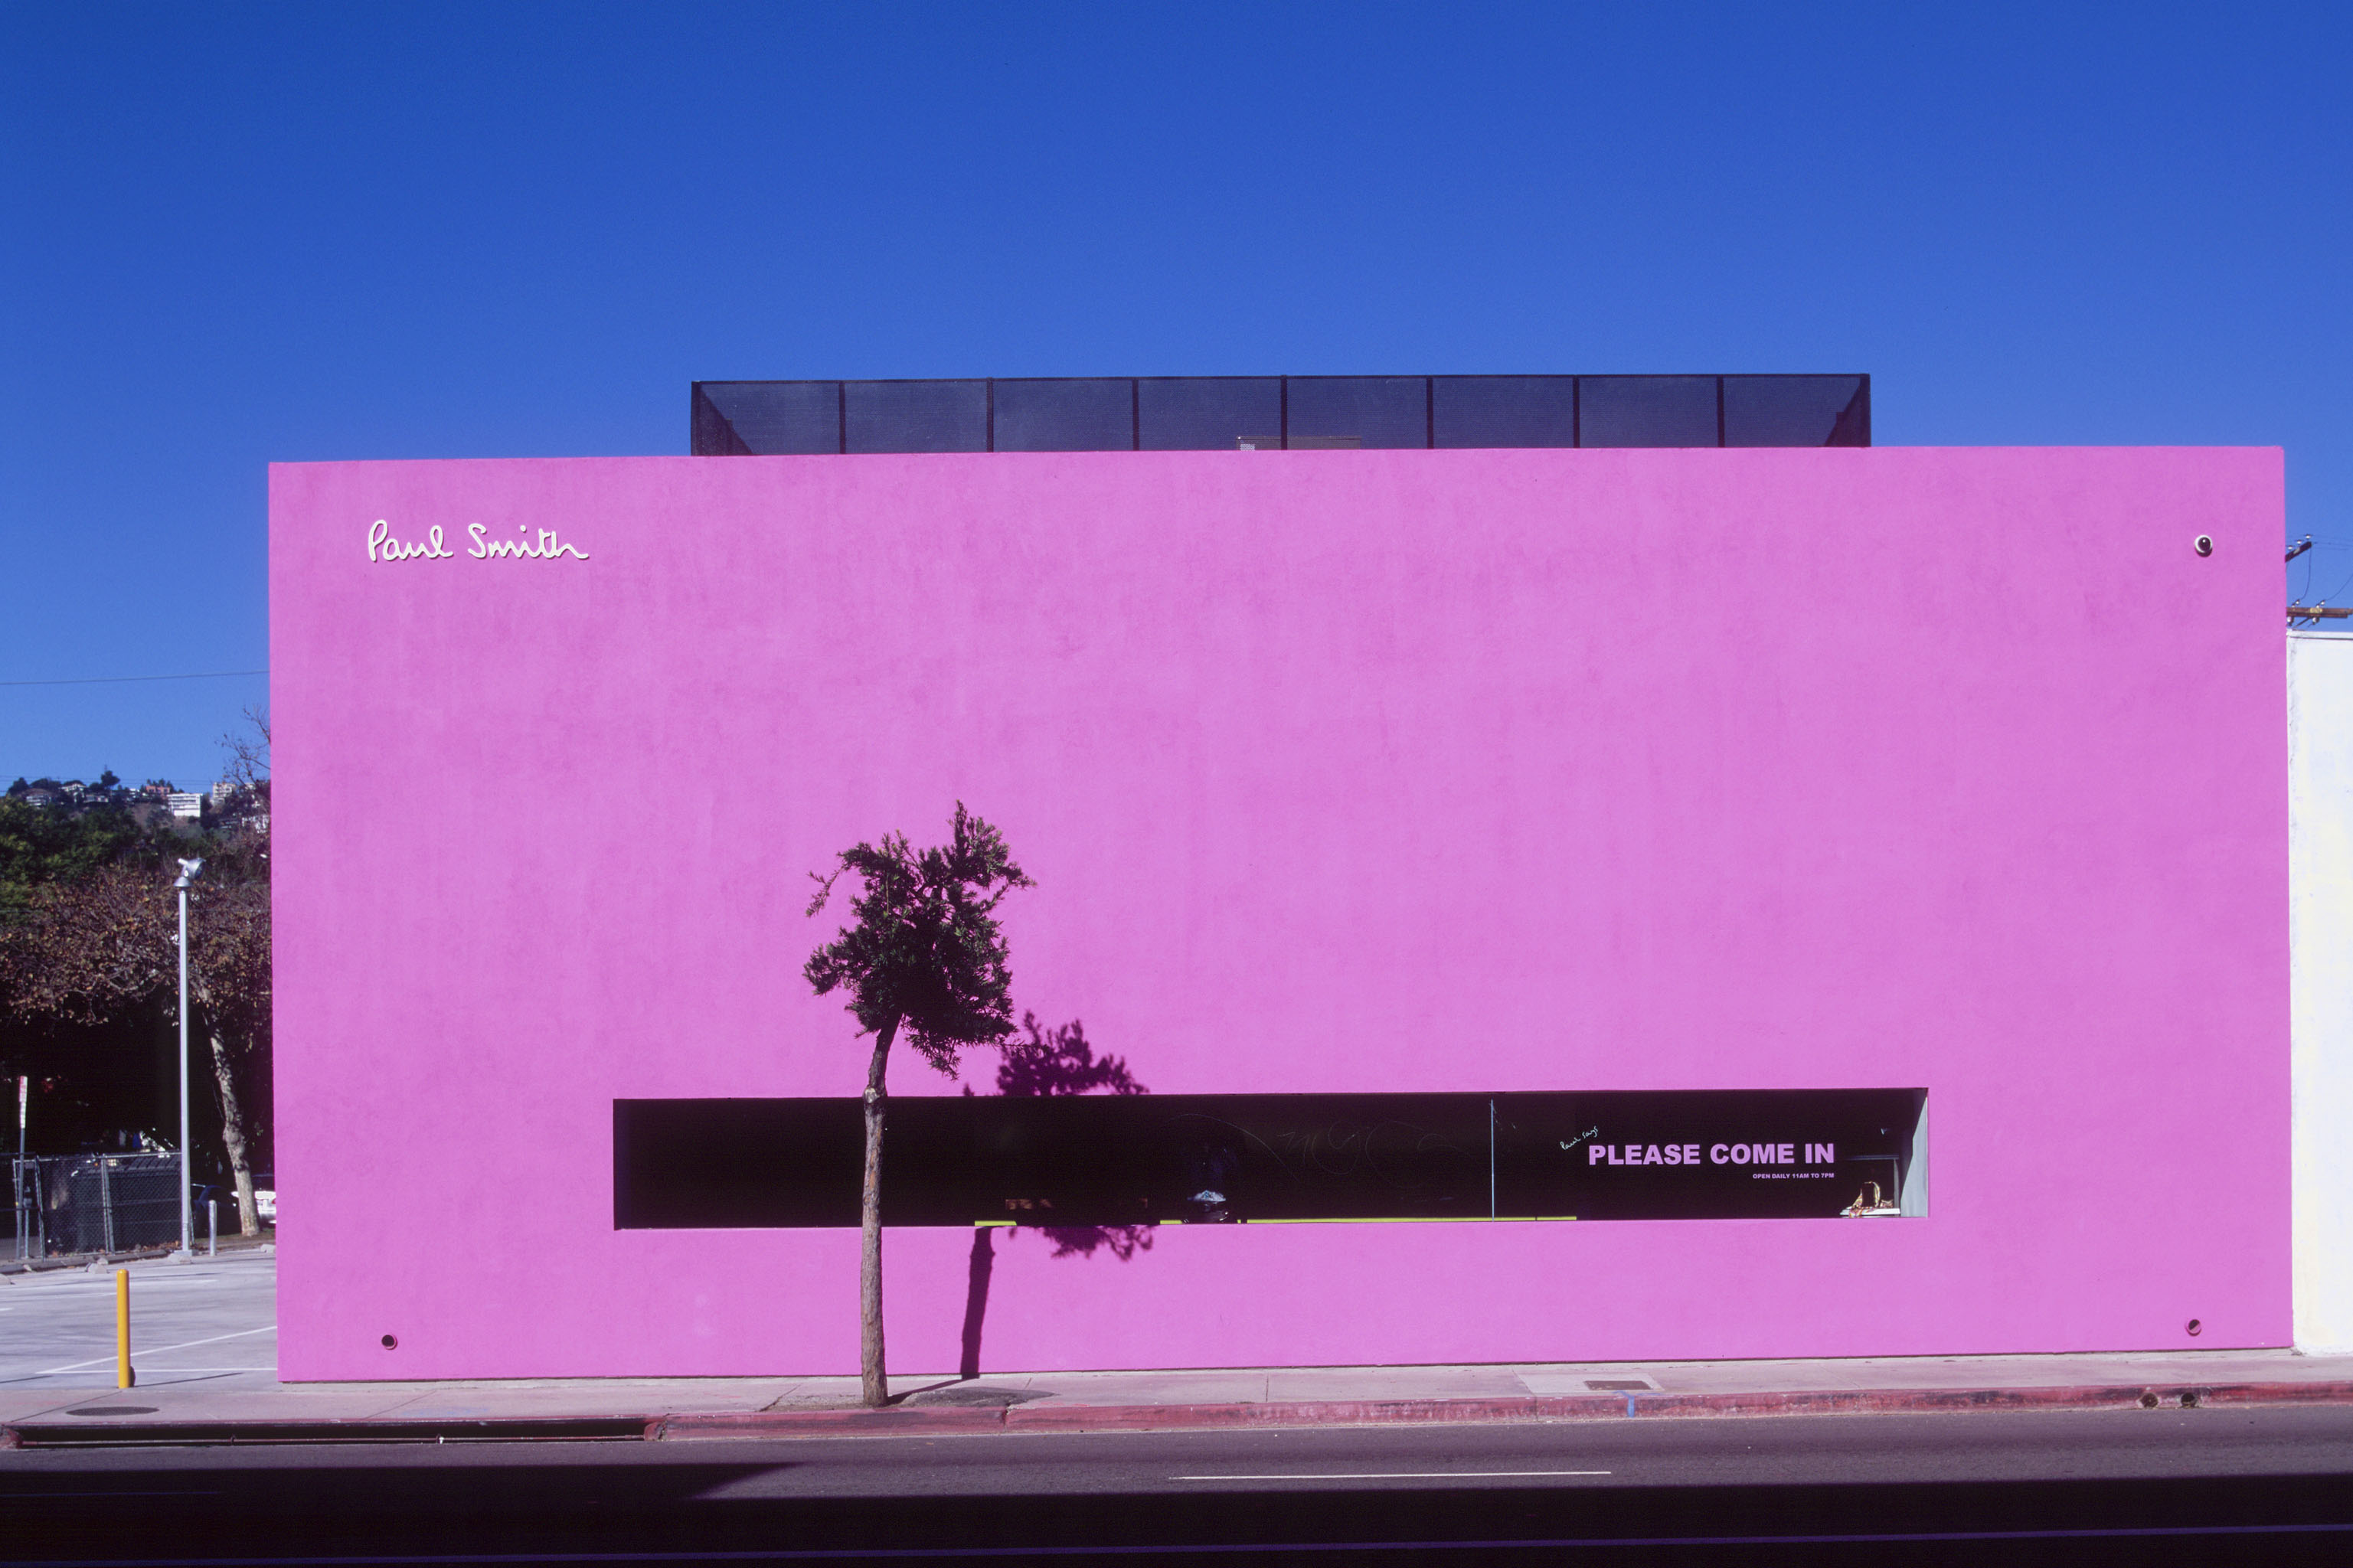 The Paul Smith store in Los Angeles.